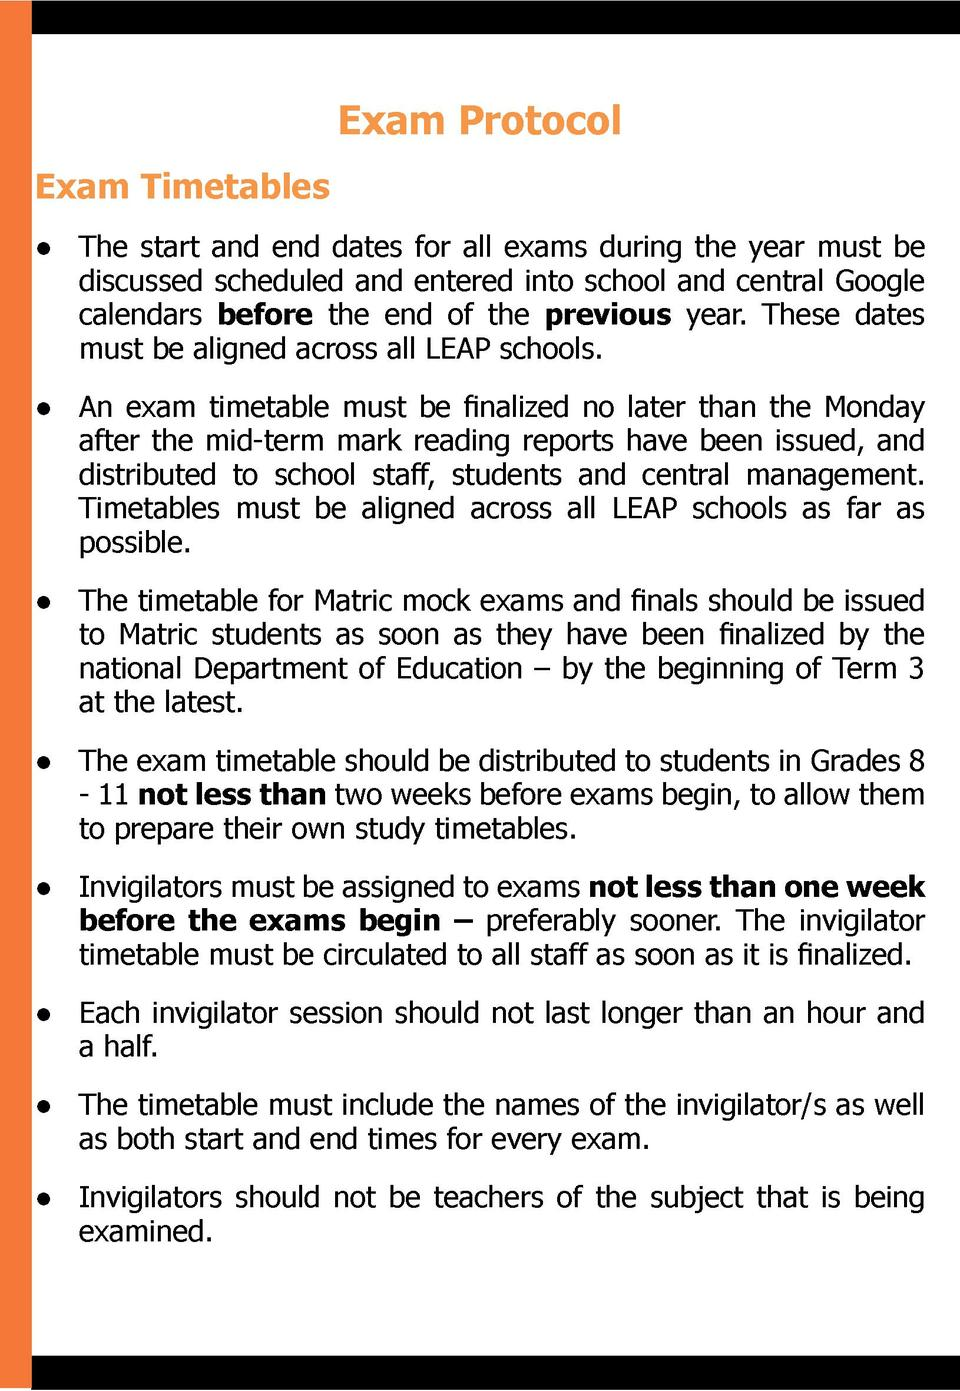 Exam Protocol Exam Timetables      The start and end dates for all exams during the year must be discussed scheduled and e...